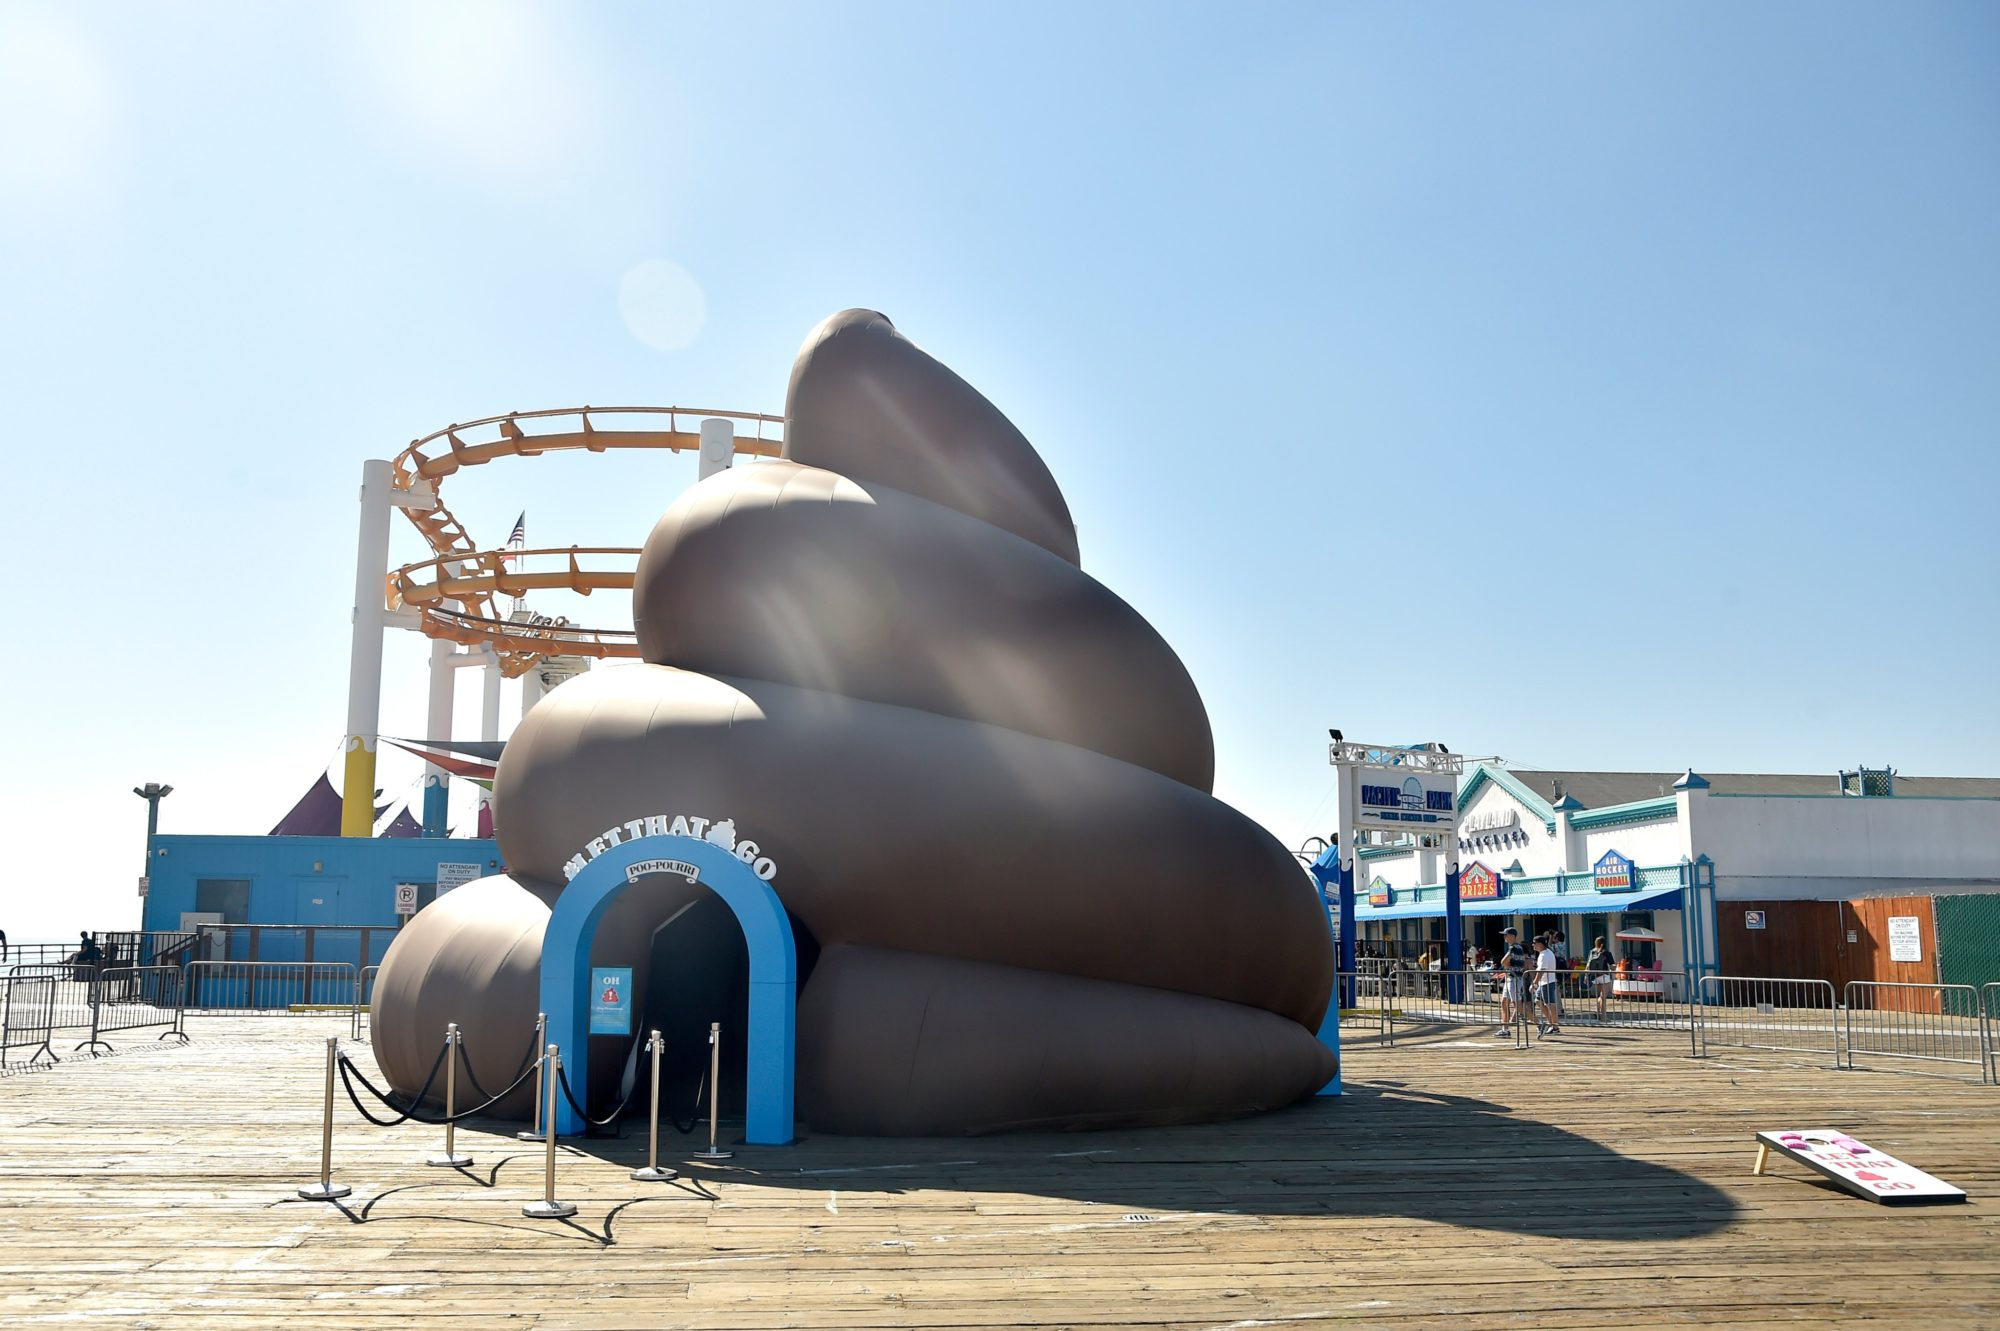 The Giant Poo